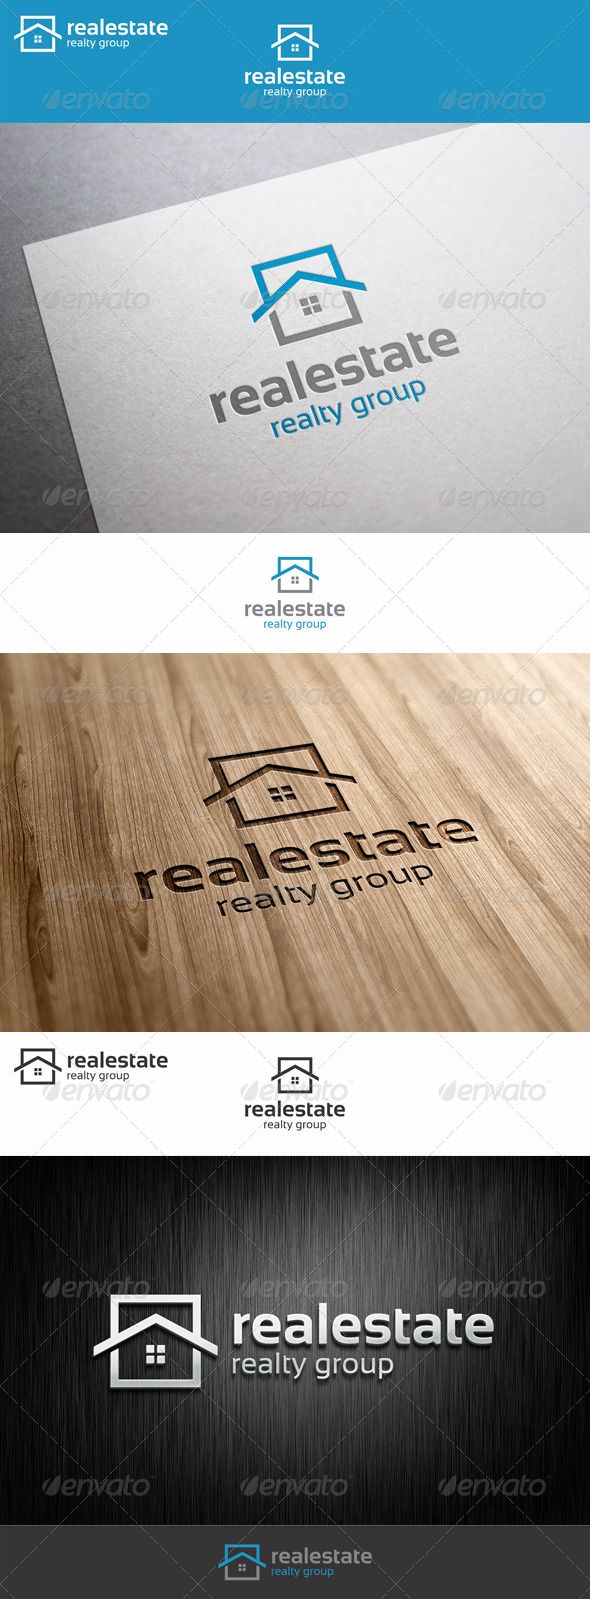 Real estate logo realty group